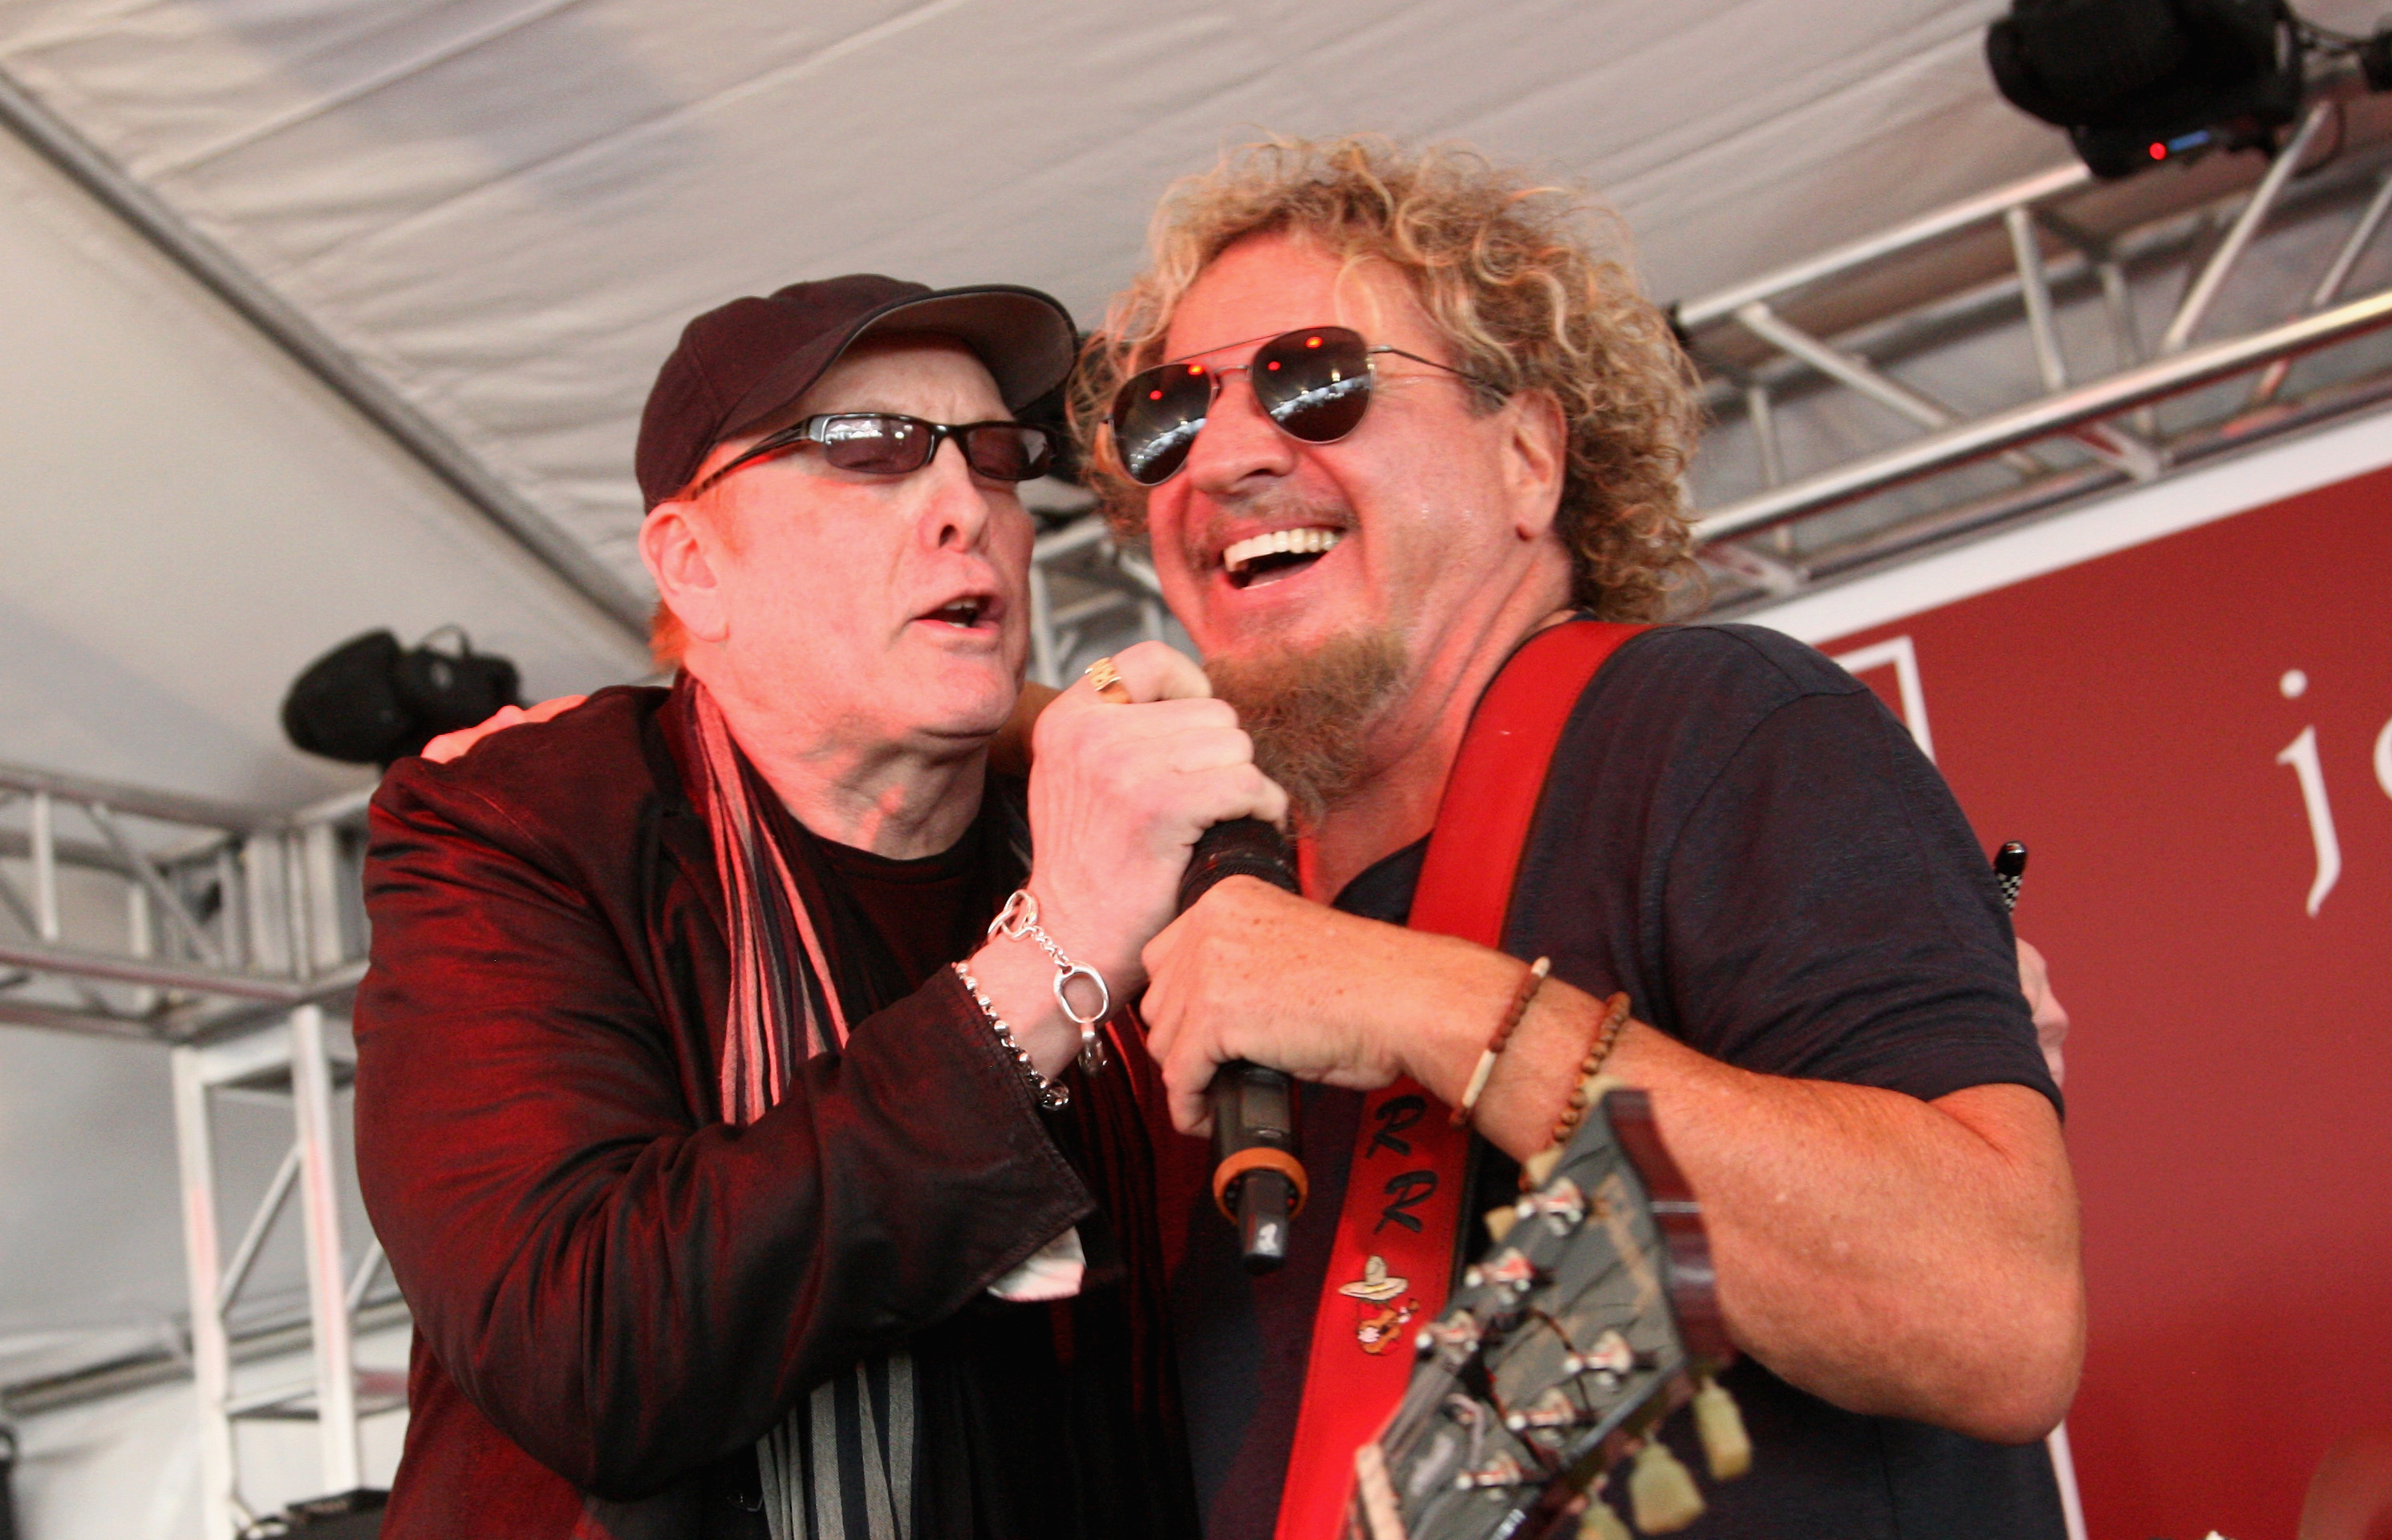 John Varvatos 13th Annual Stuart House Benefit Presented By Chrysler With Kids' Tent By Hasbro Studios - Inside